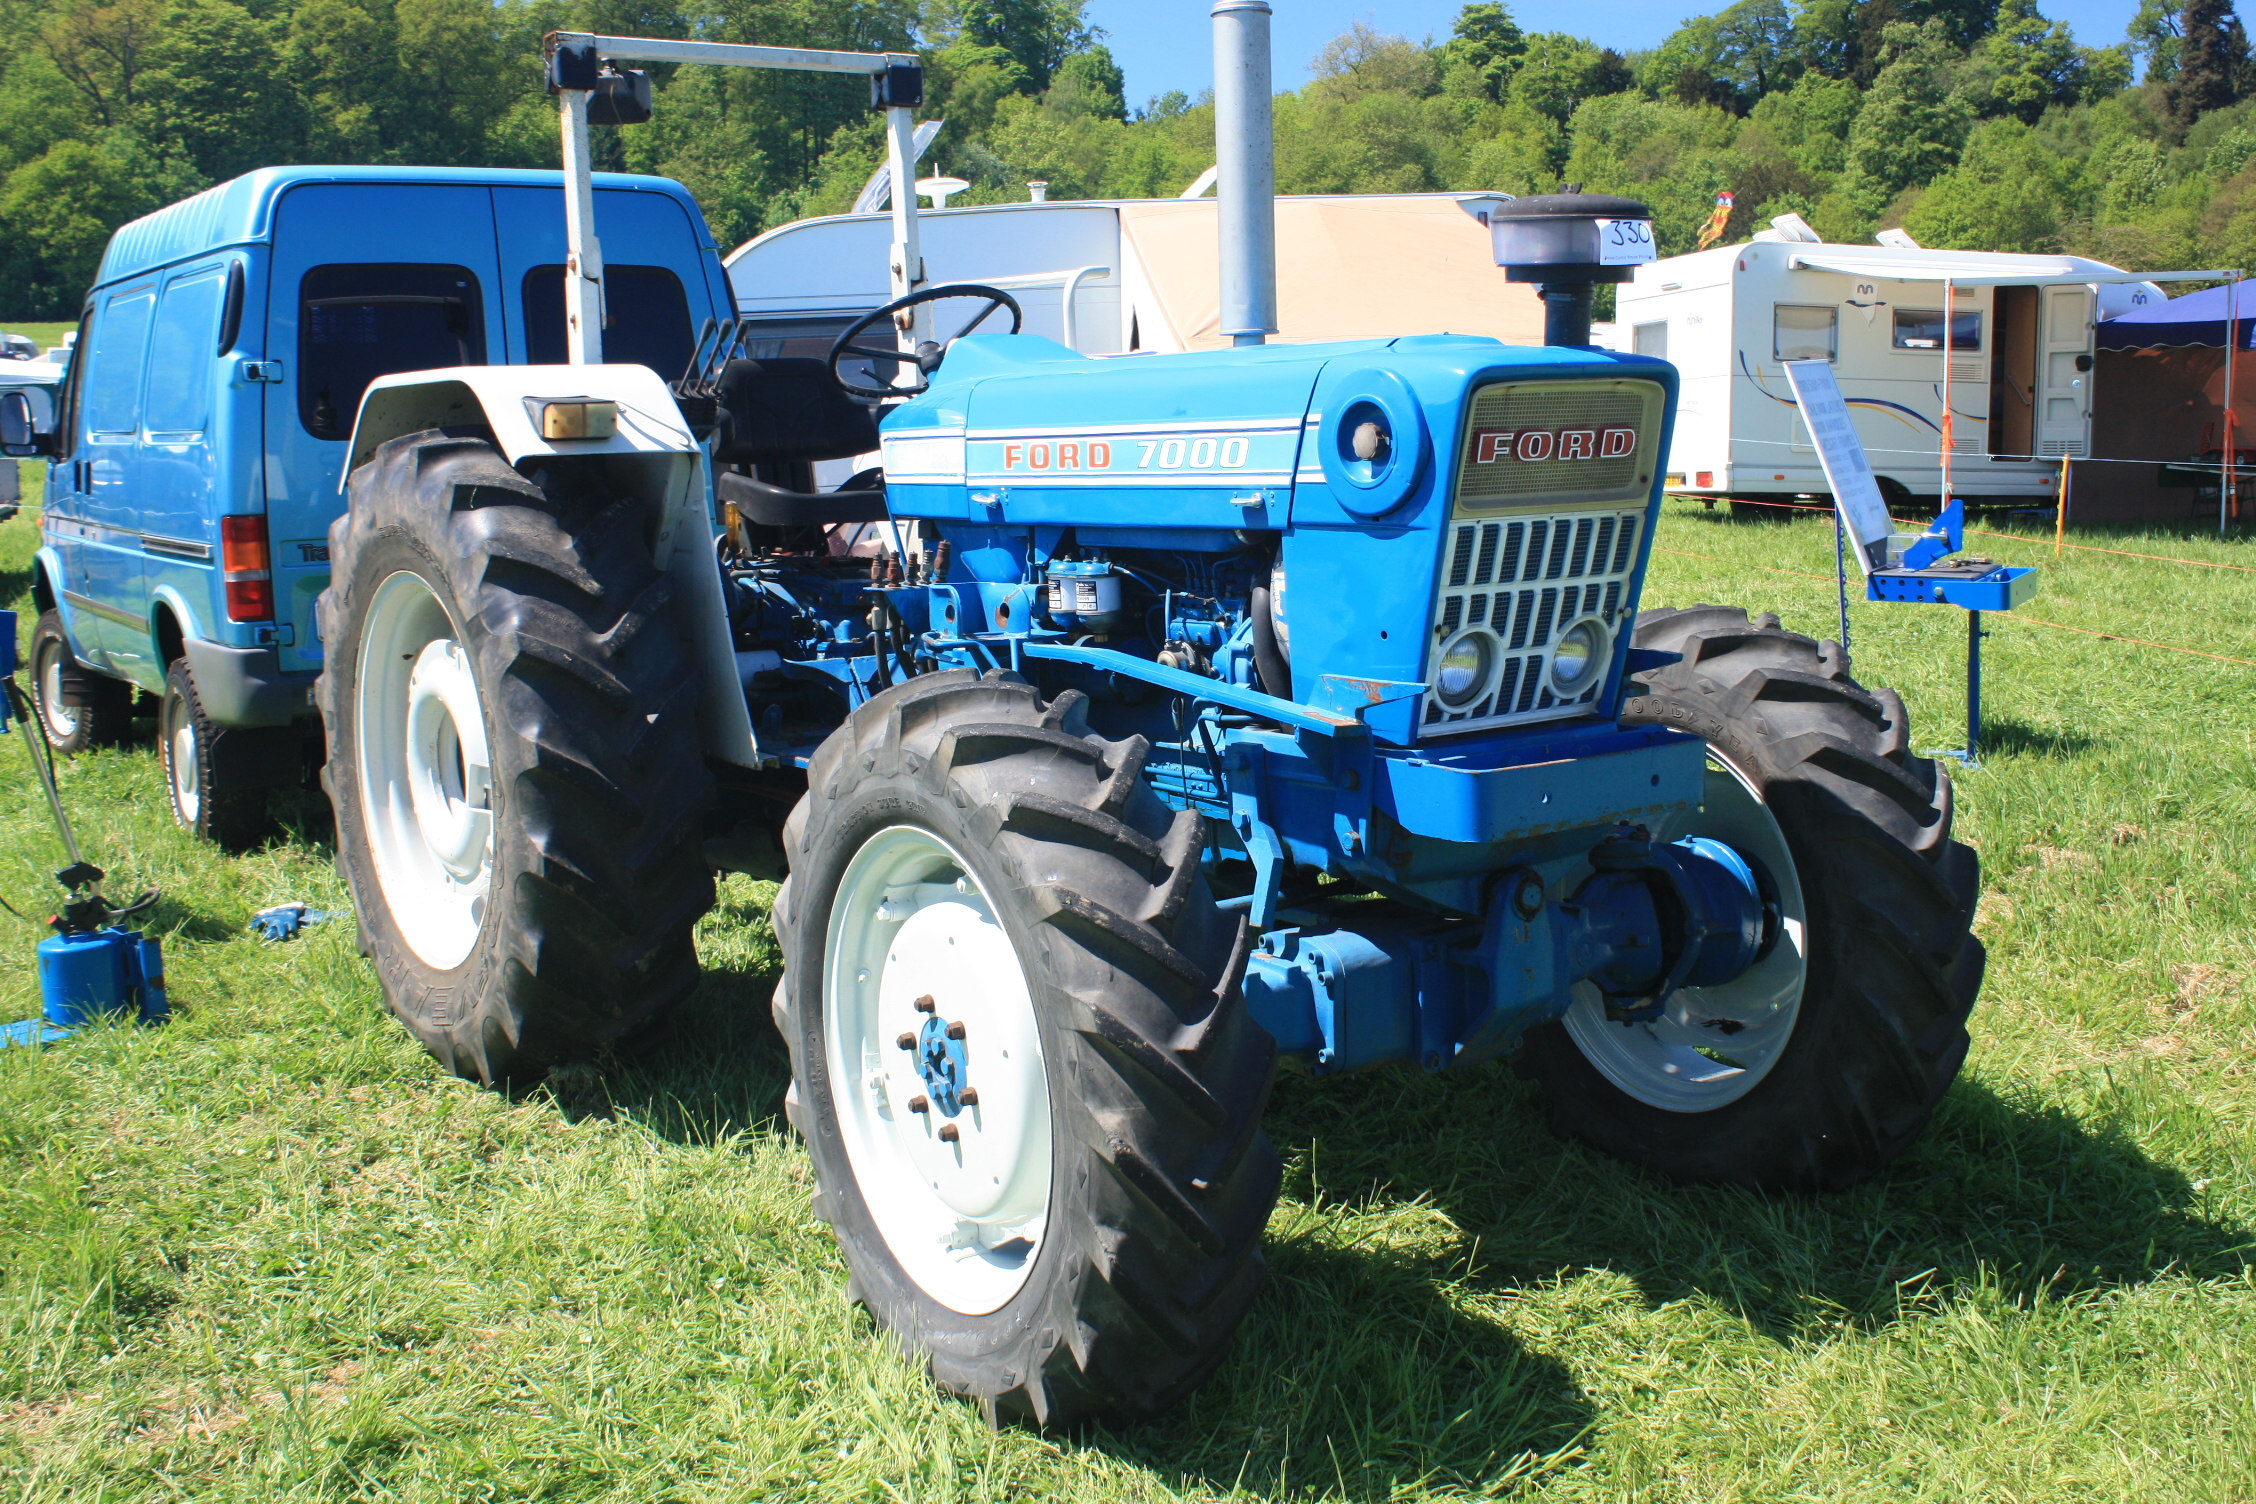 Ford 7000 Tractor : Ford tractor construction plant wiki the